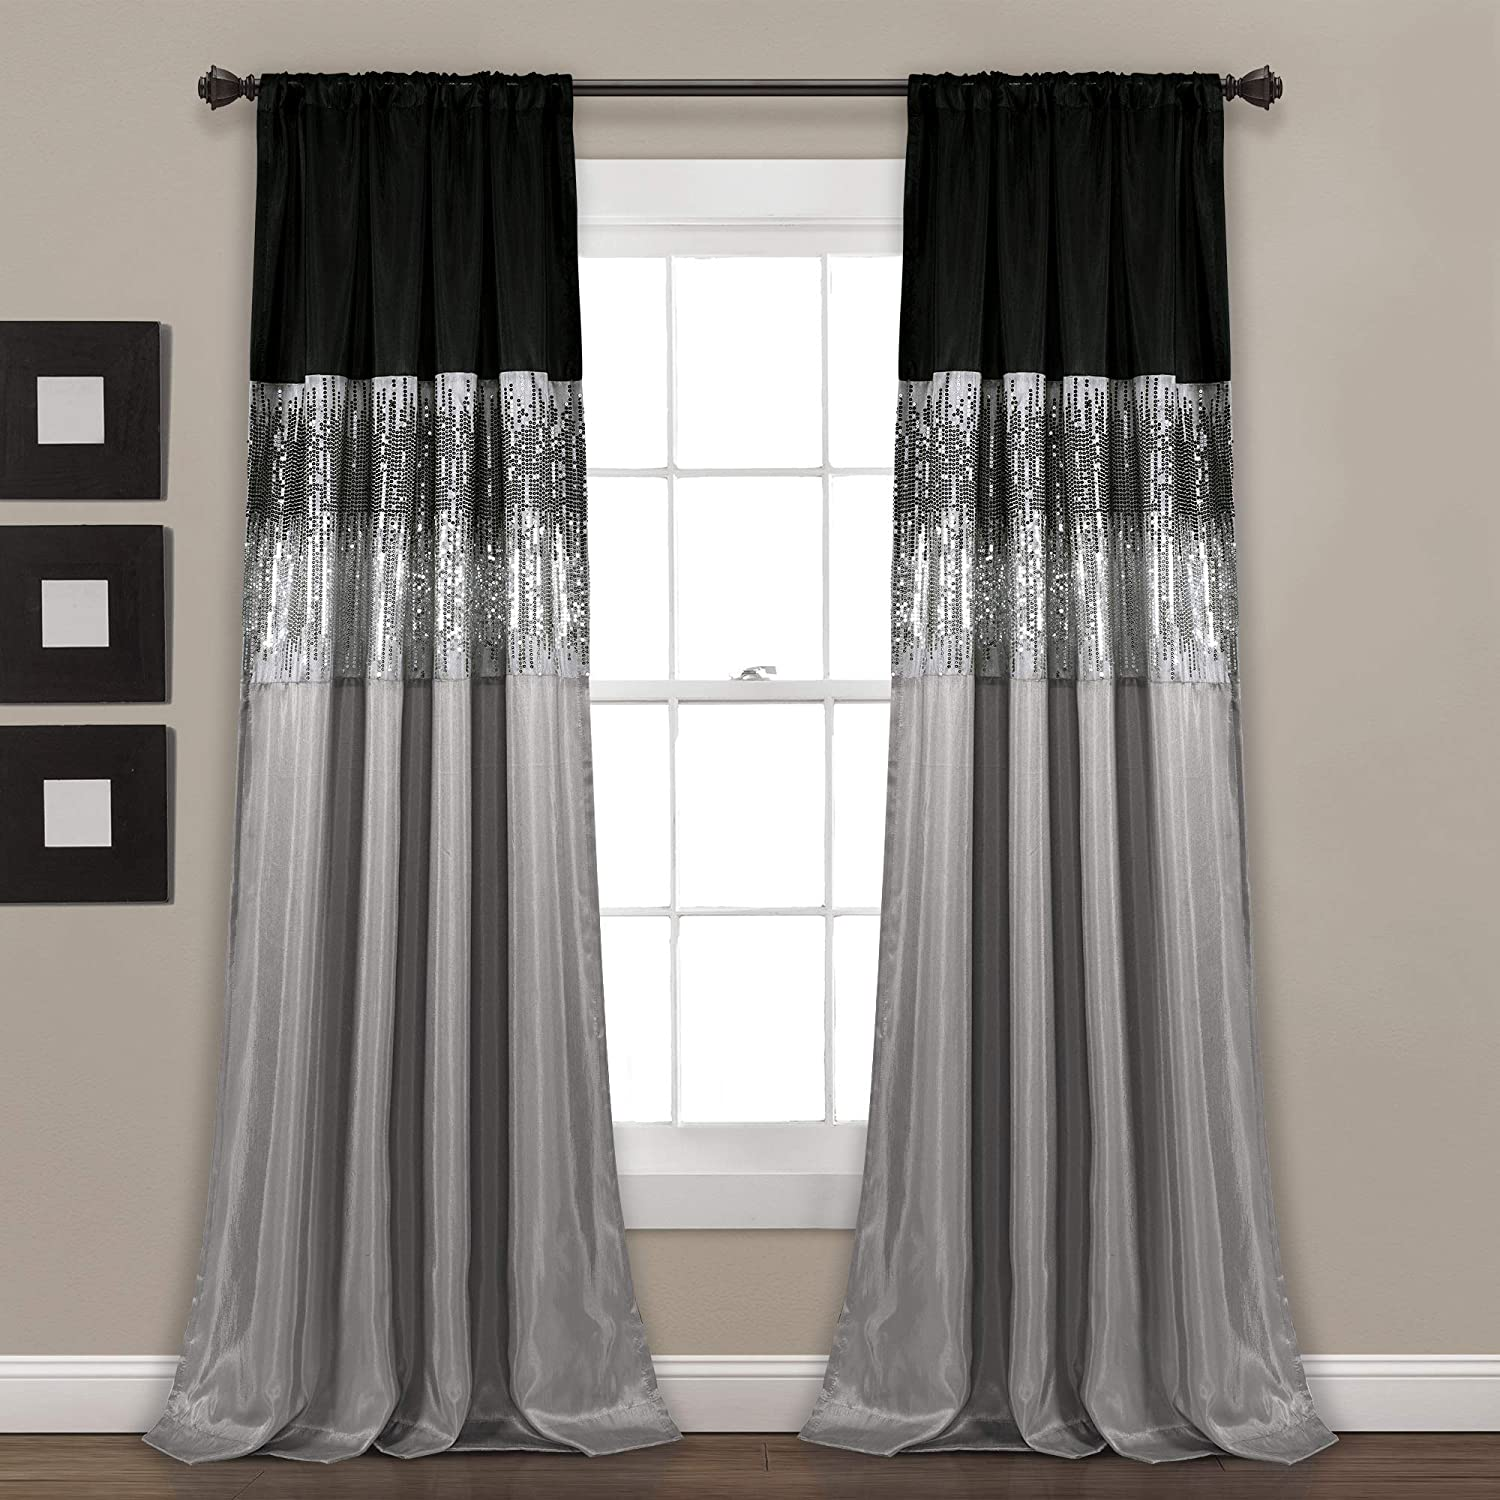 "Lush Décor Night Sky Panel for Living, Bedroom, Dining Room (Single Curtain), 84"" x 42"" Silver and Black"